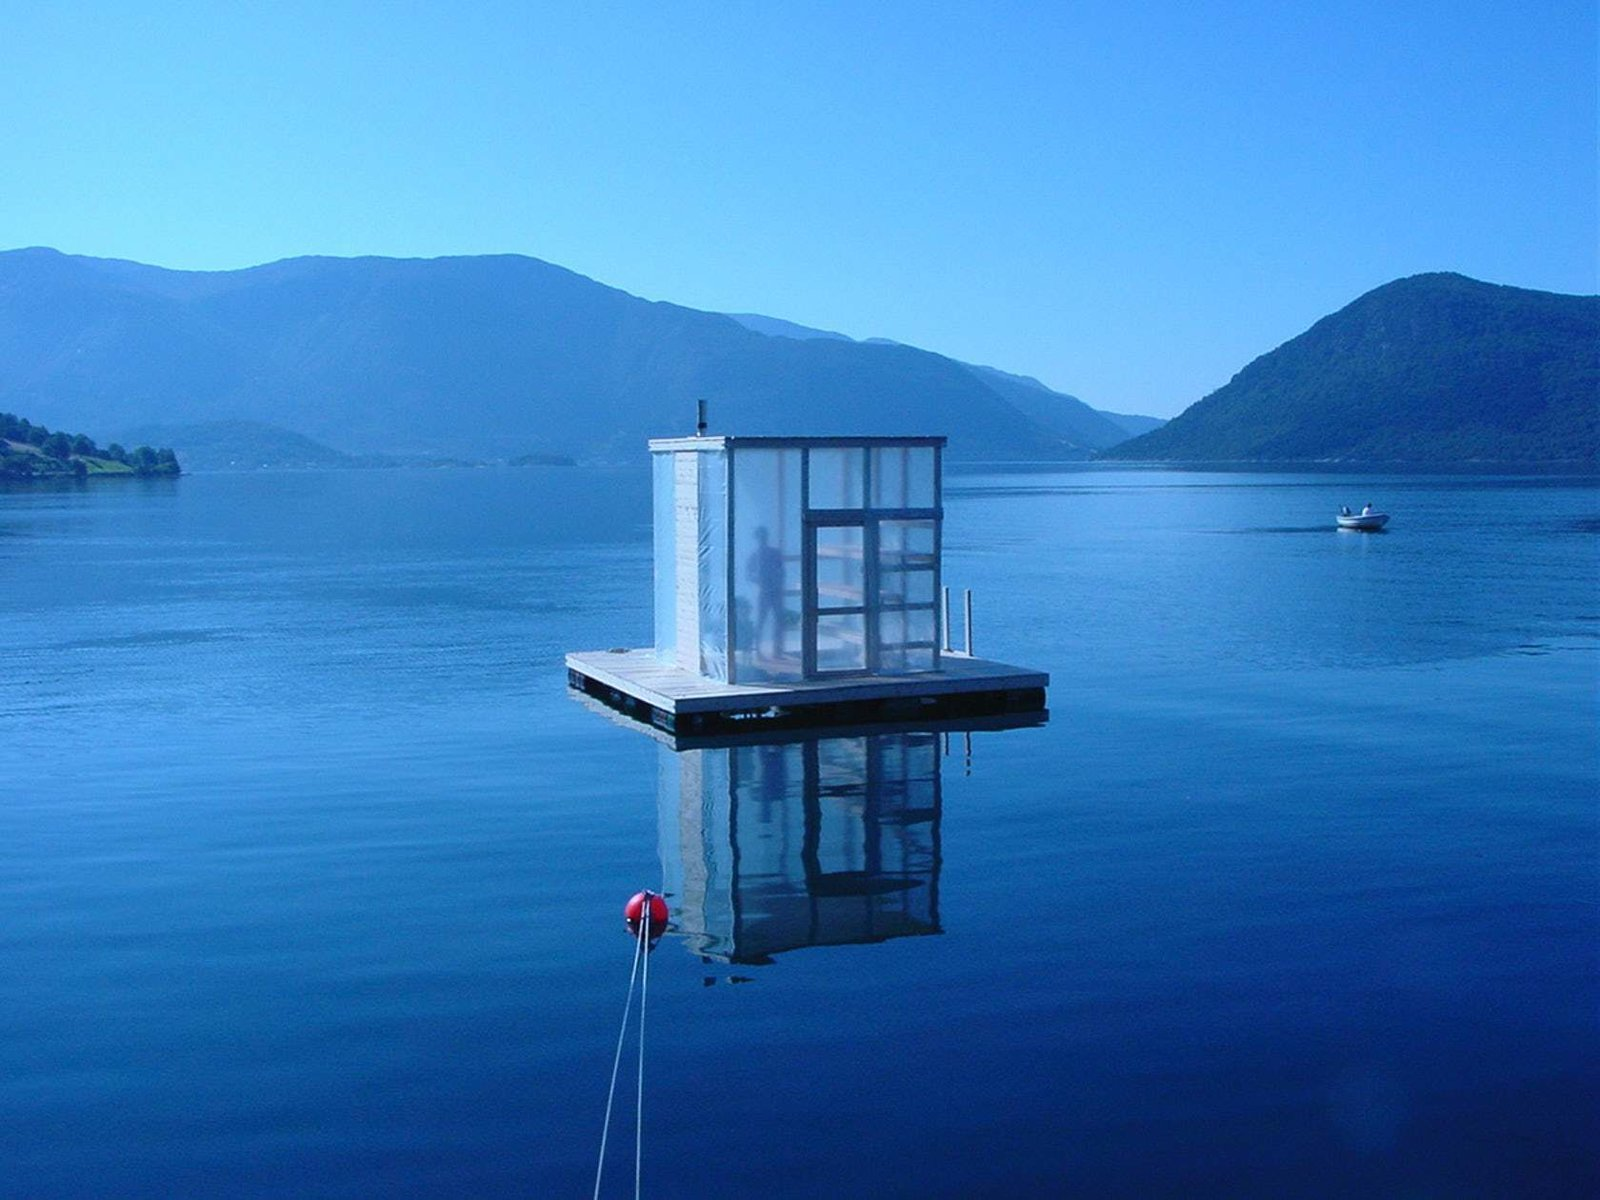 Designed by Marco Casagrande, this floating sauna was a gift for the Rosendal community, a village at the end of the majestic Hardangerfjord in Norway.  Photo 3 of 11 in Escape to One of These 10 Otherworldly Outdoor Saunas from Saunas